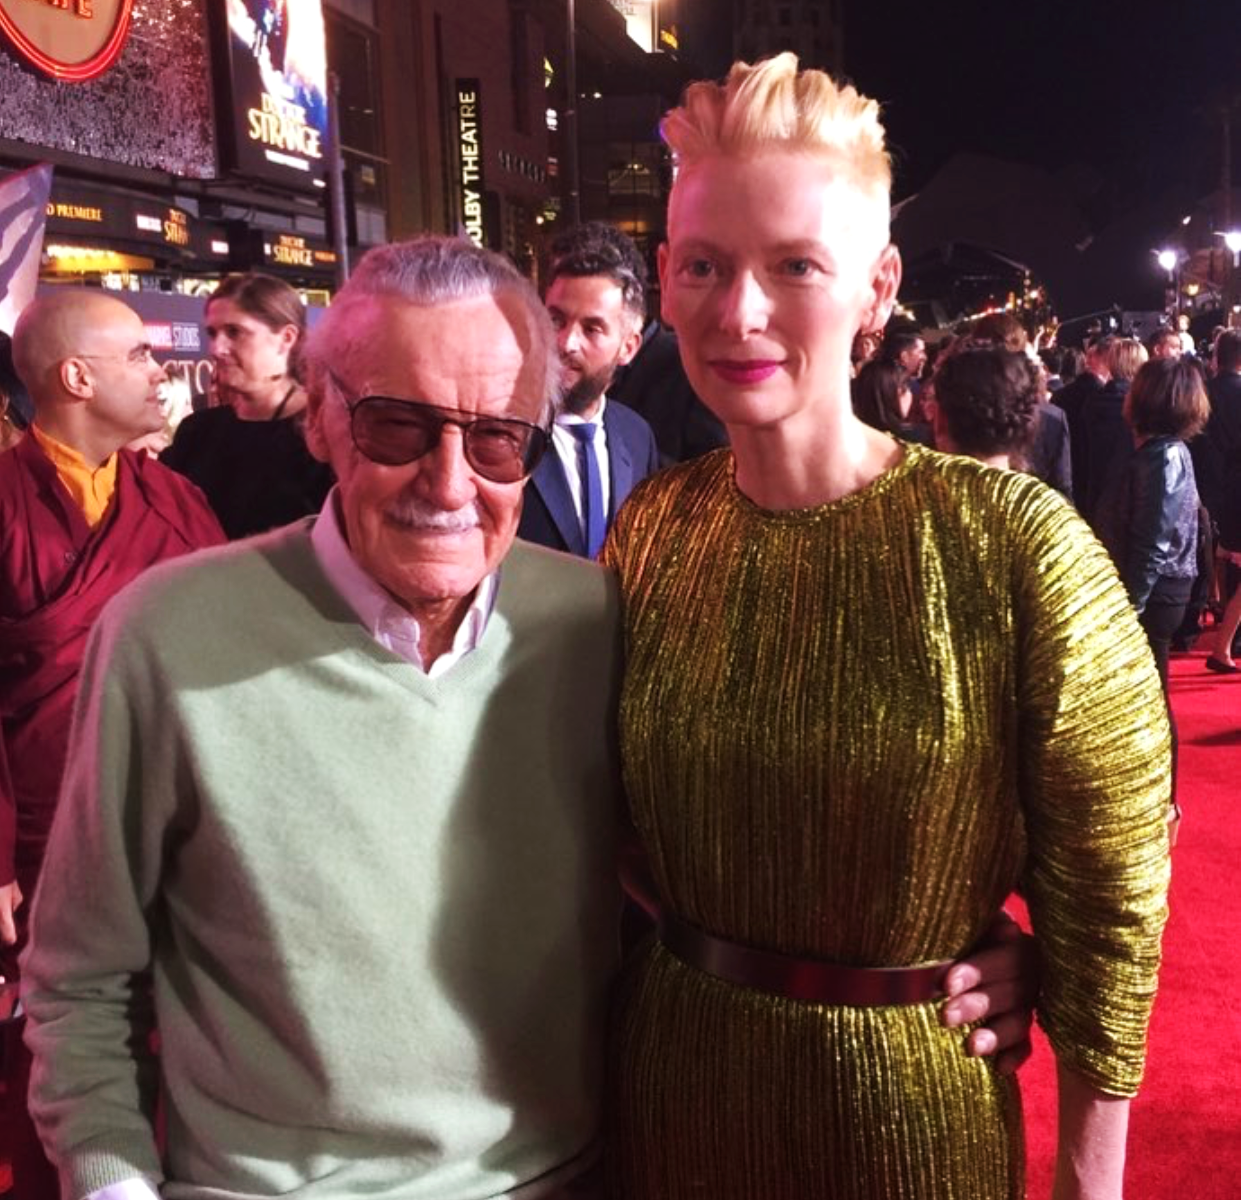 doctor-strange-movie-premiere-stan-lee-tilda-swinton